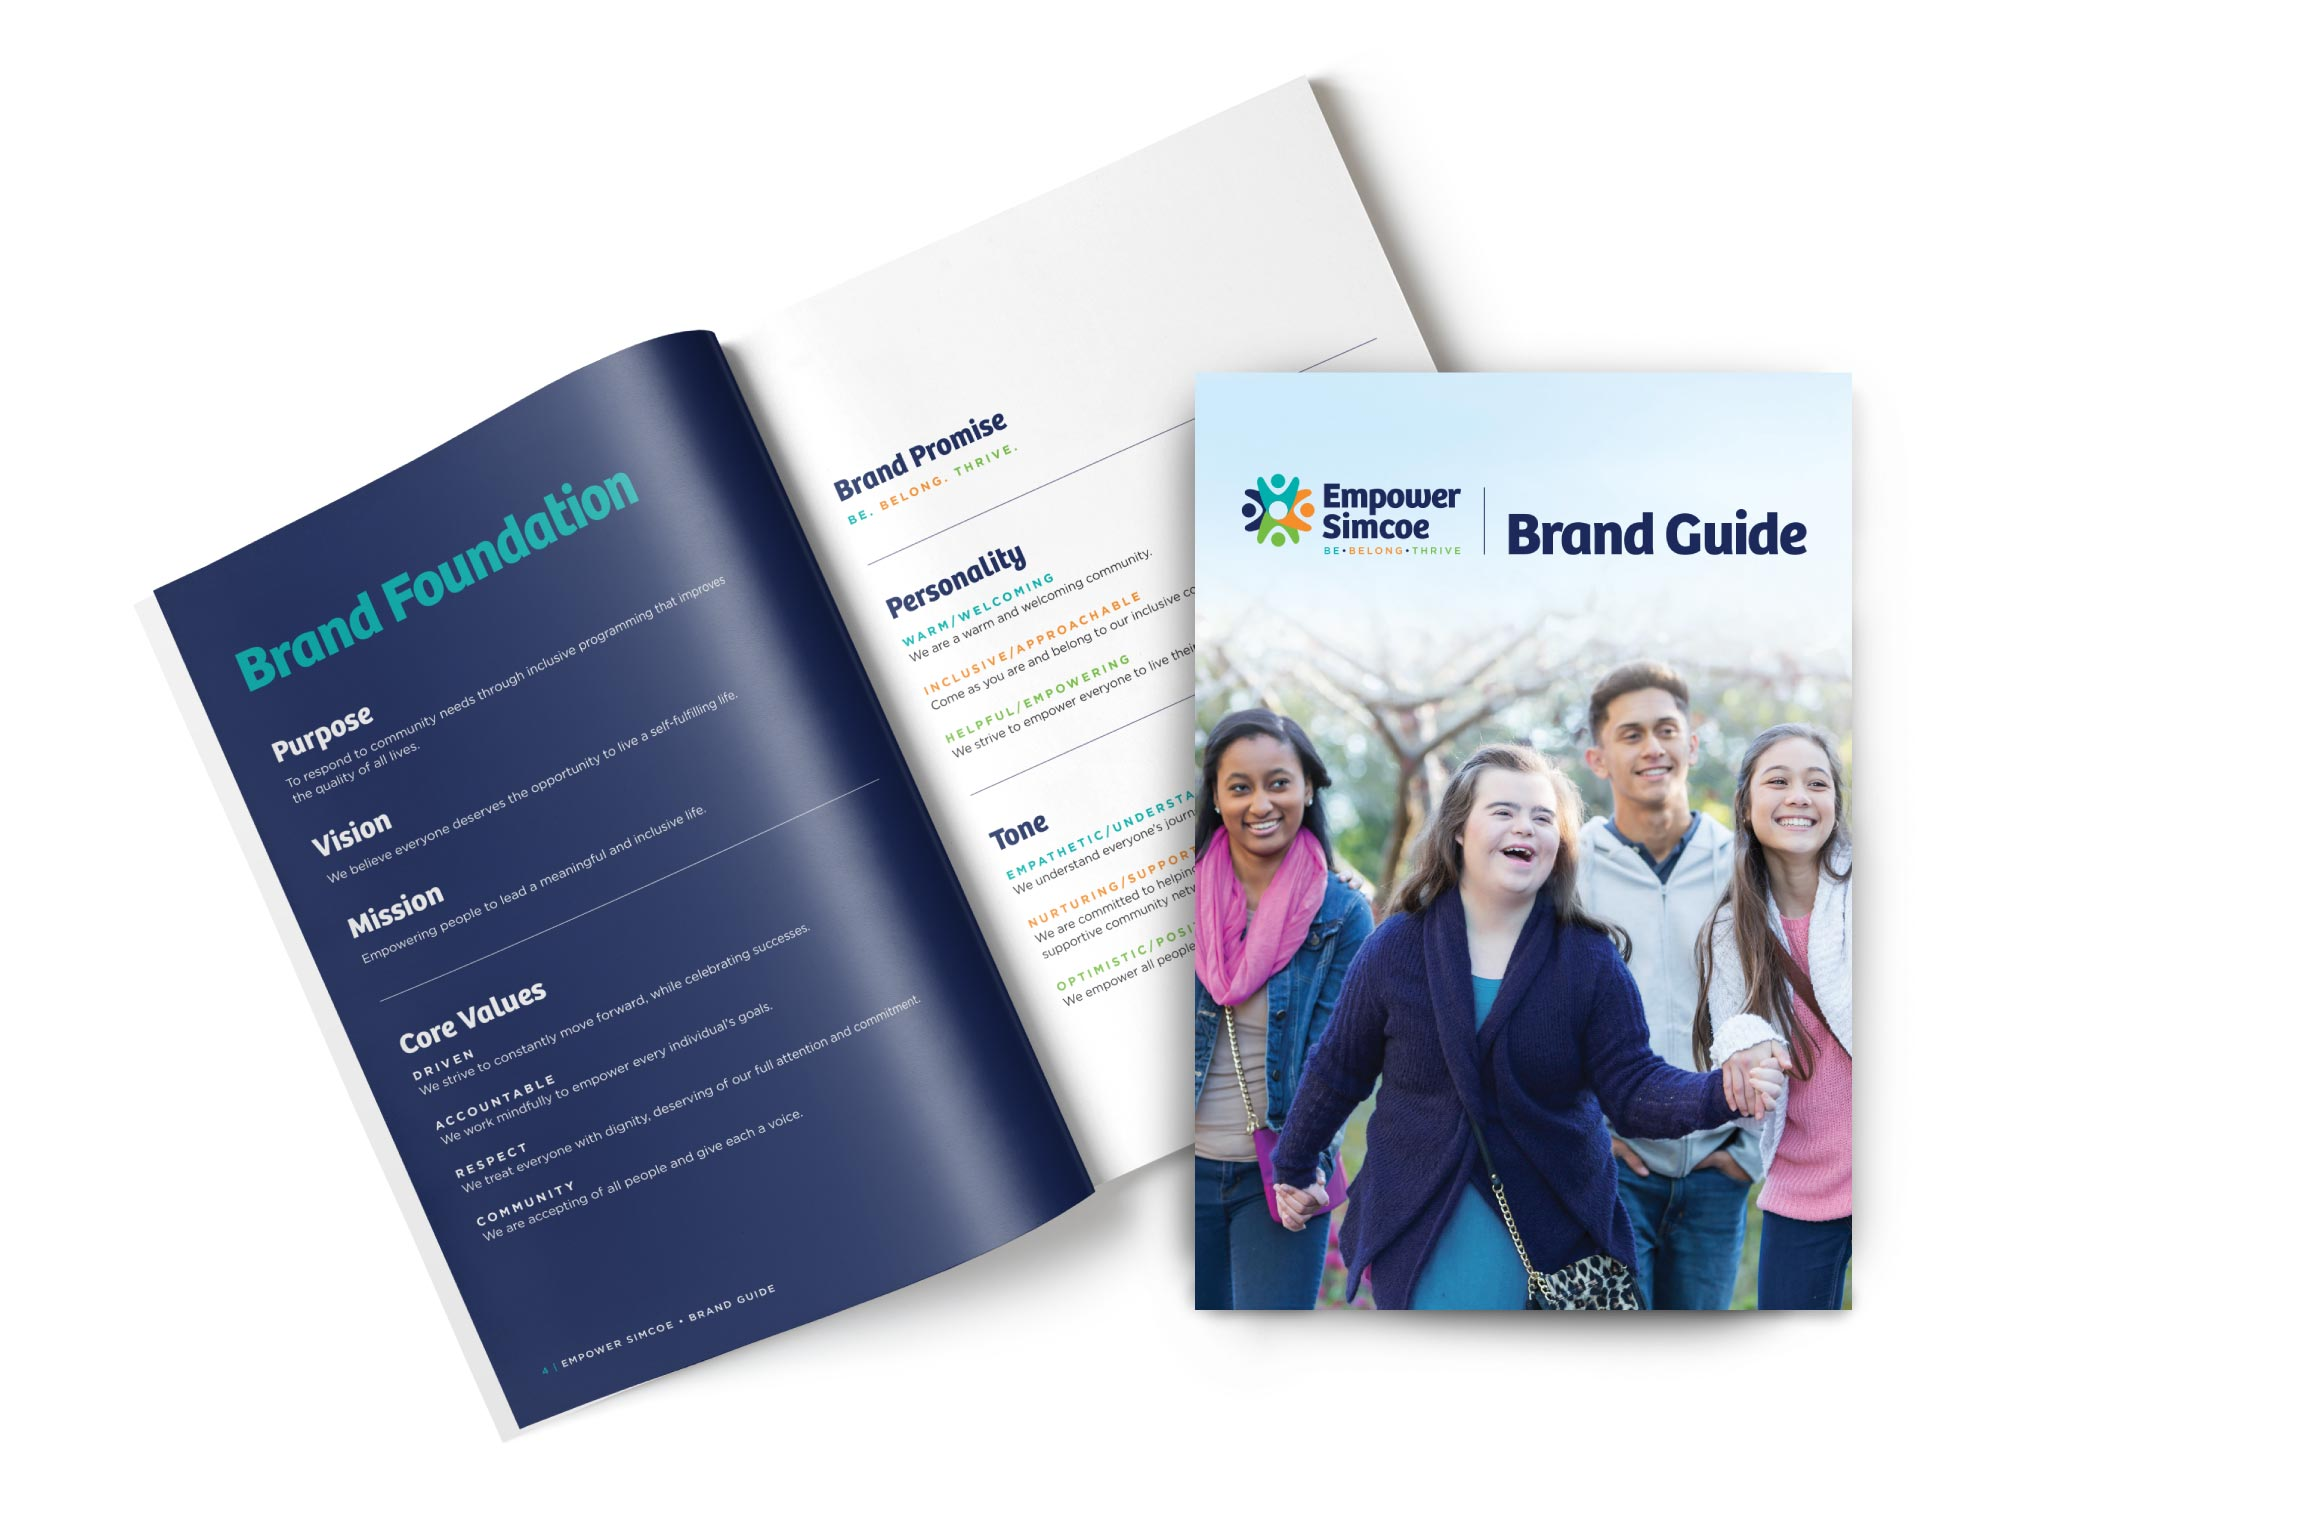 Empower Simcoe Brand Guide